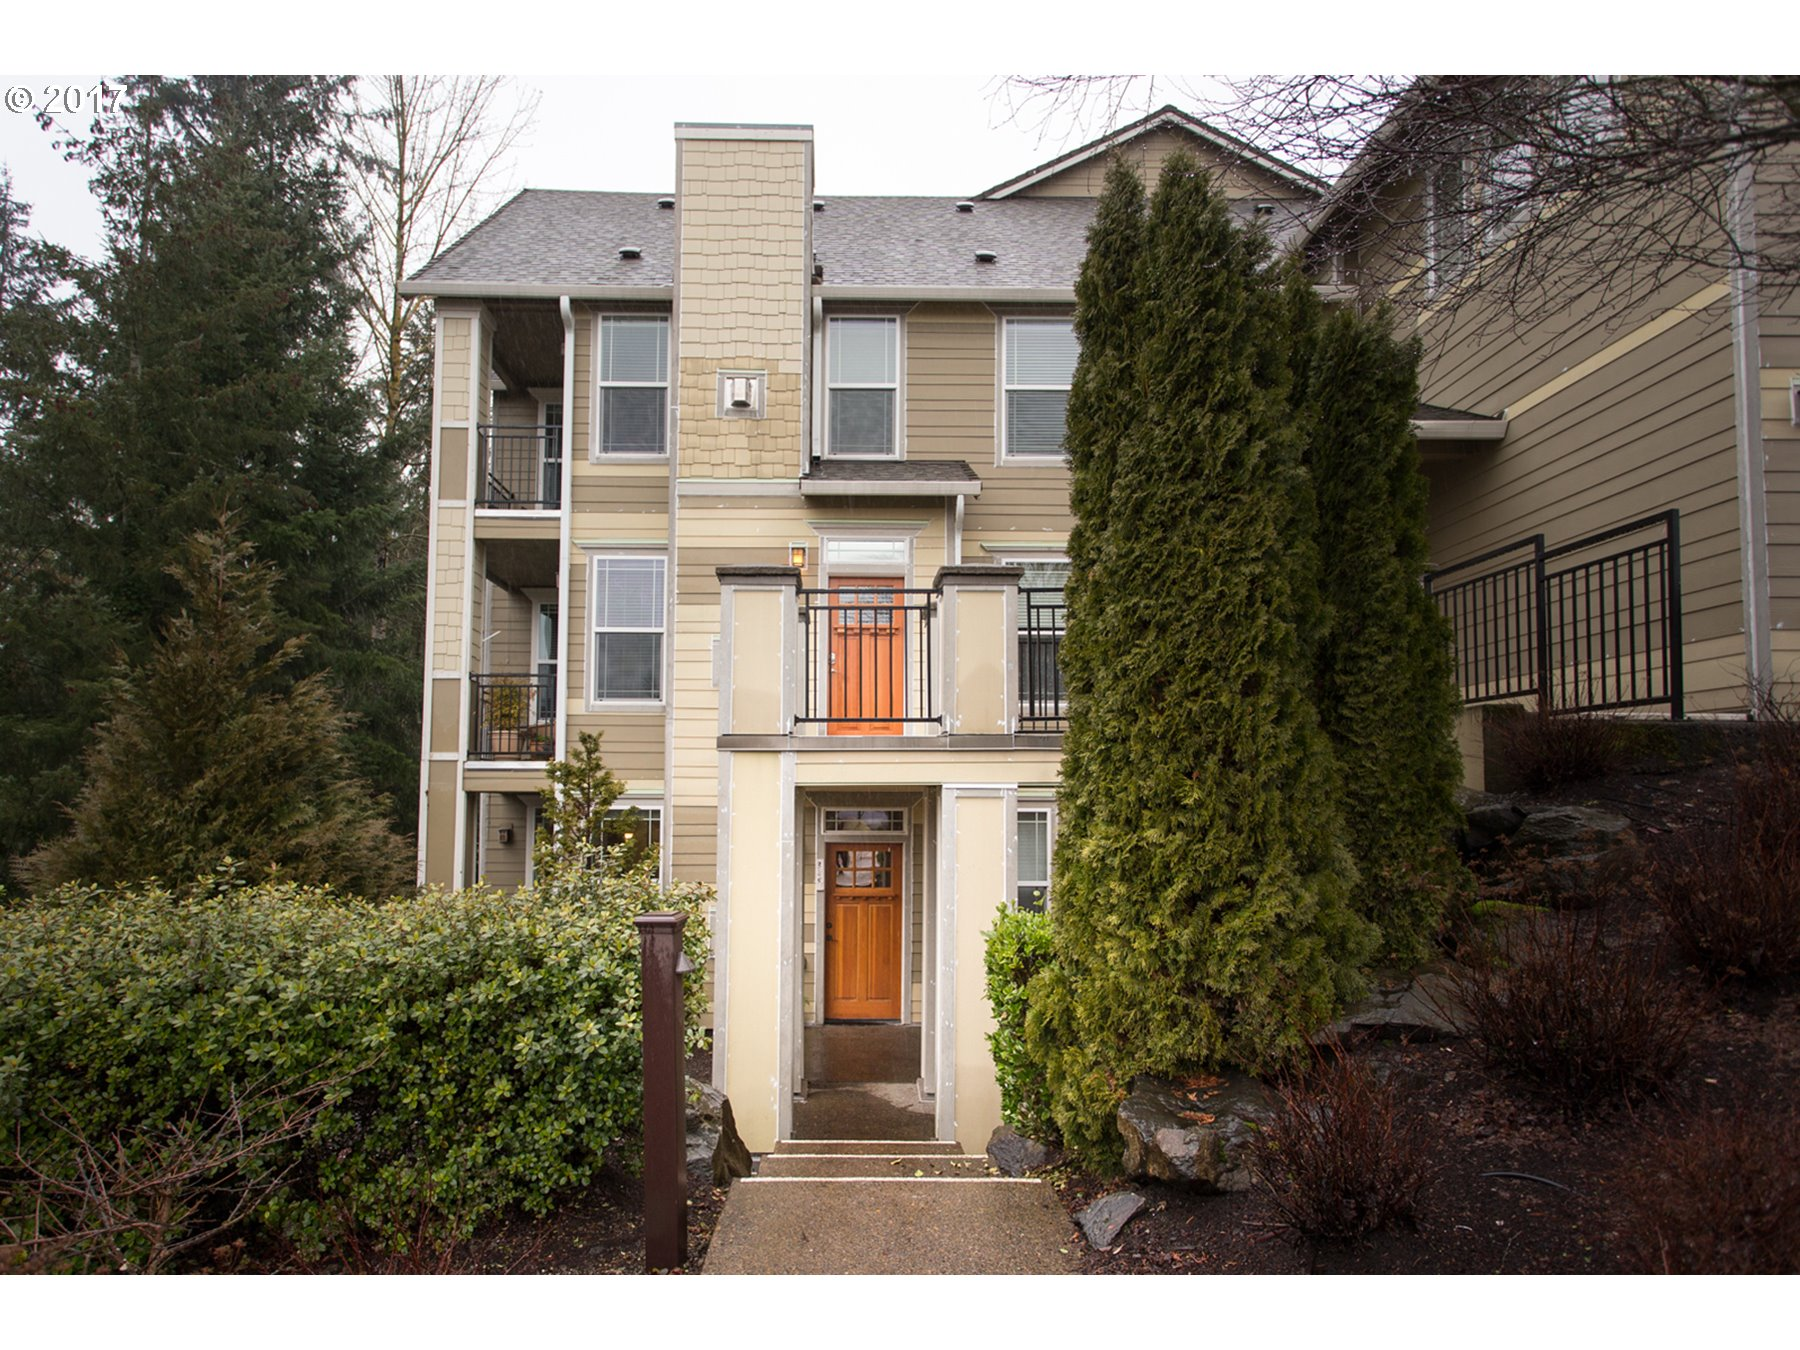 1593 sq. ft 2 bedrooms 2 bathrooms  House For Sale, West Linn, OR